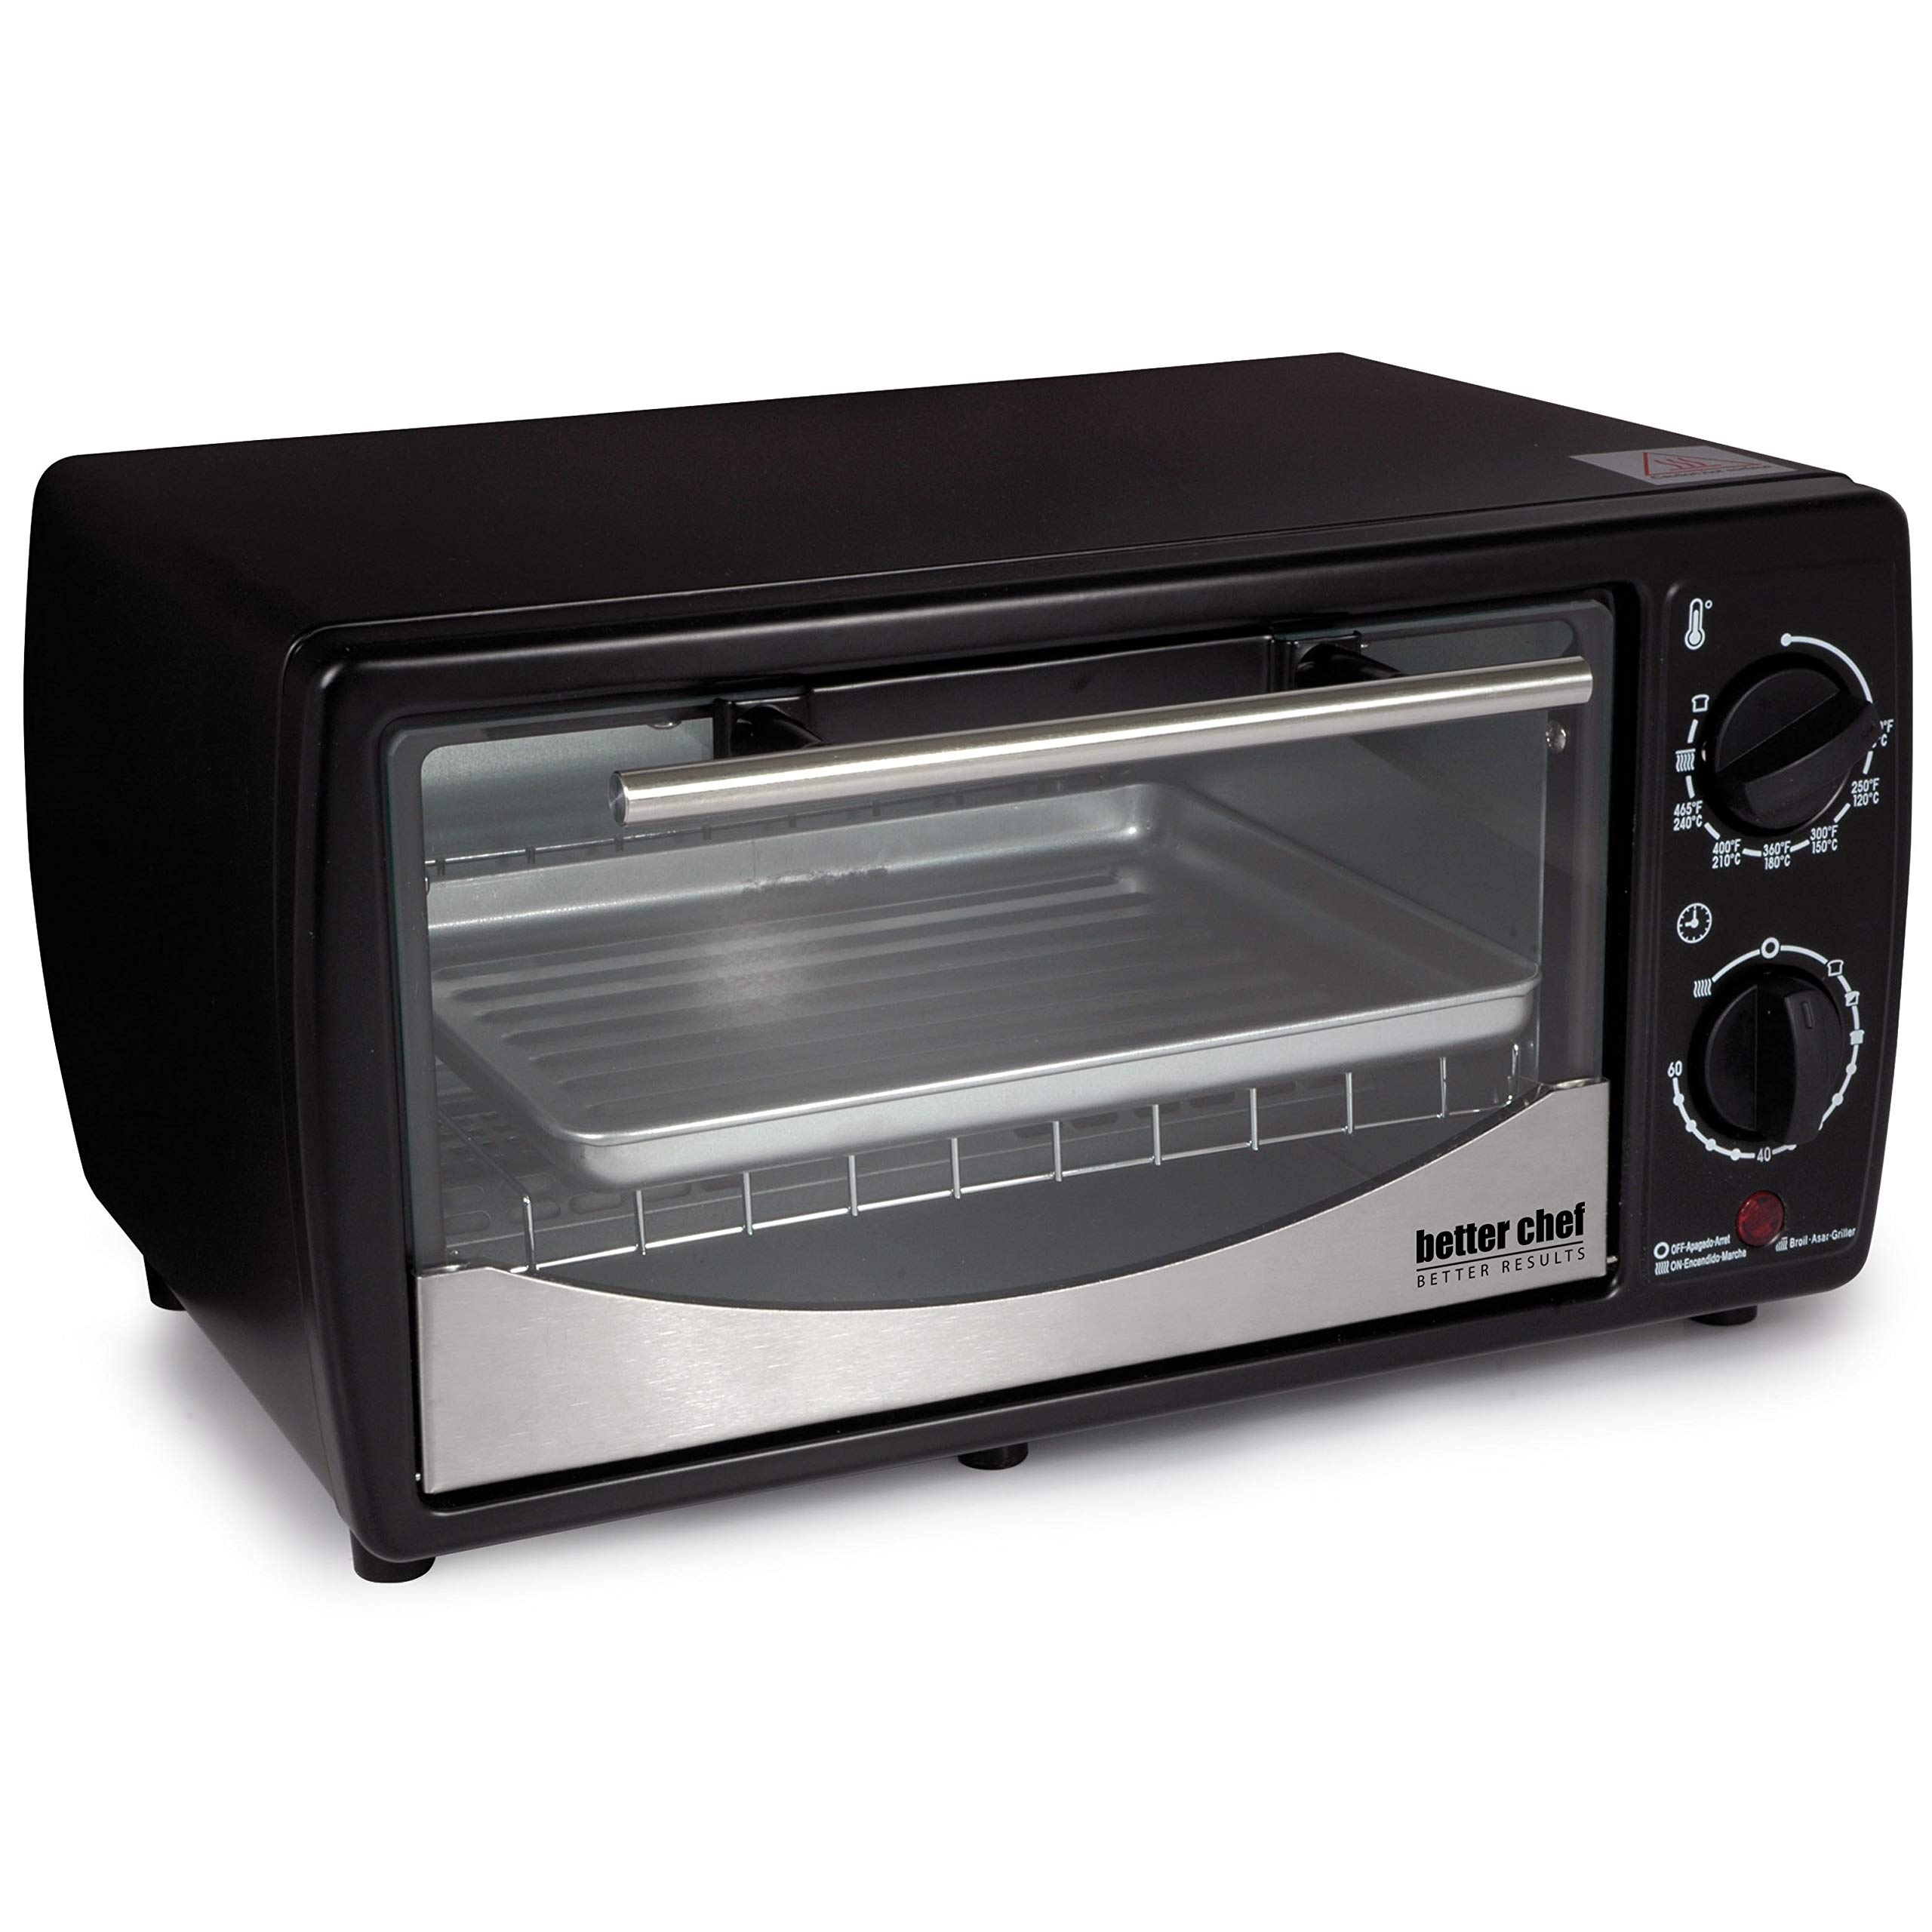 Better Chef 9 Liter Toaster Oven Broiler Red by Better Chef (Image #3)